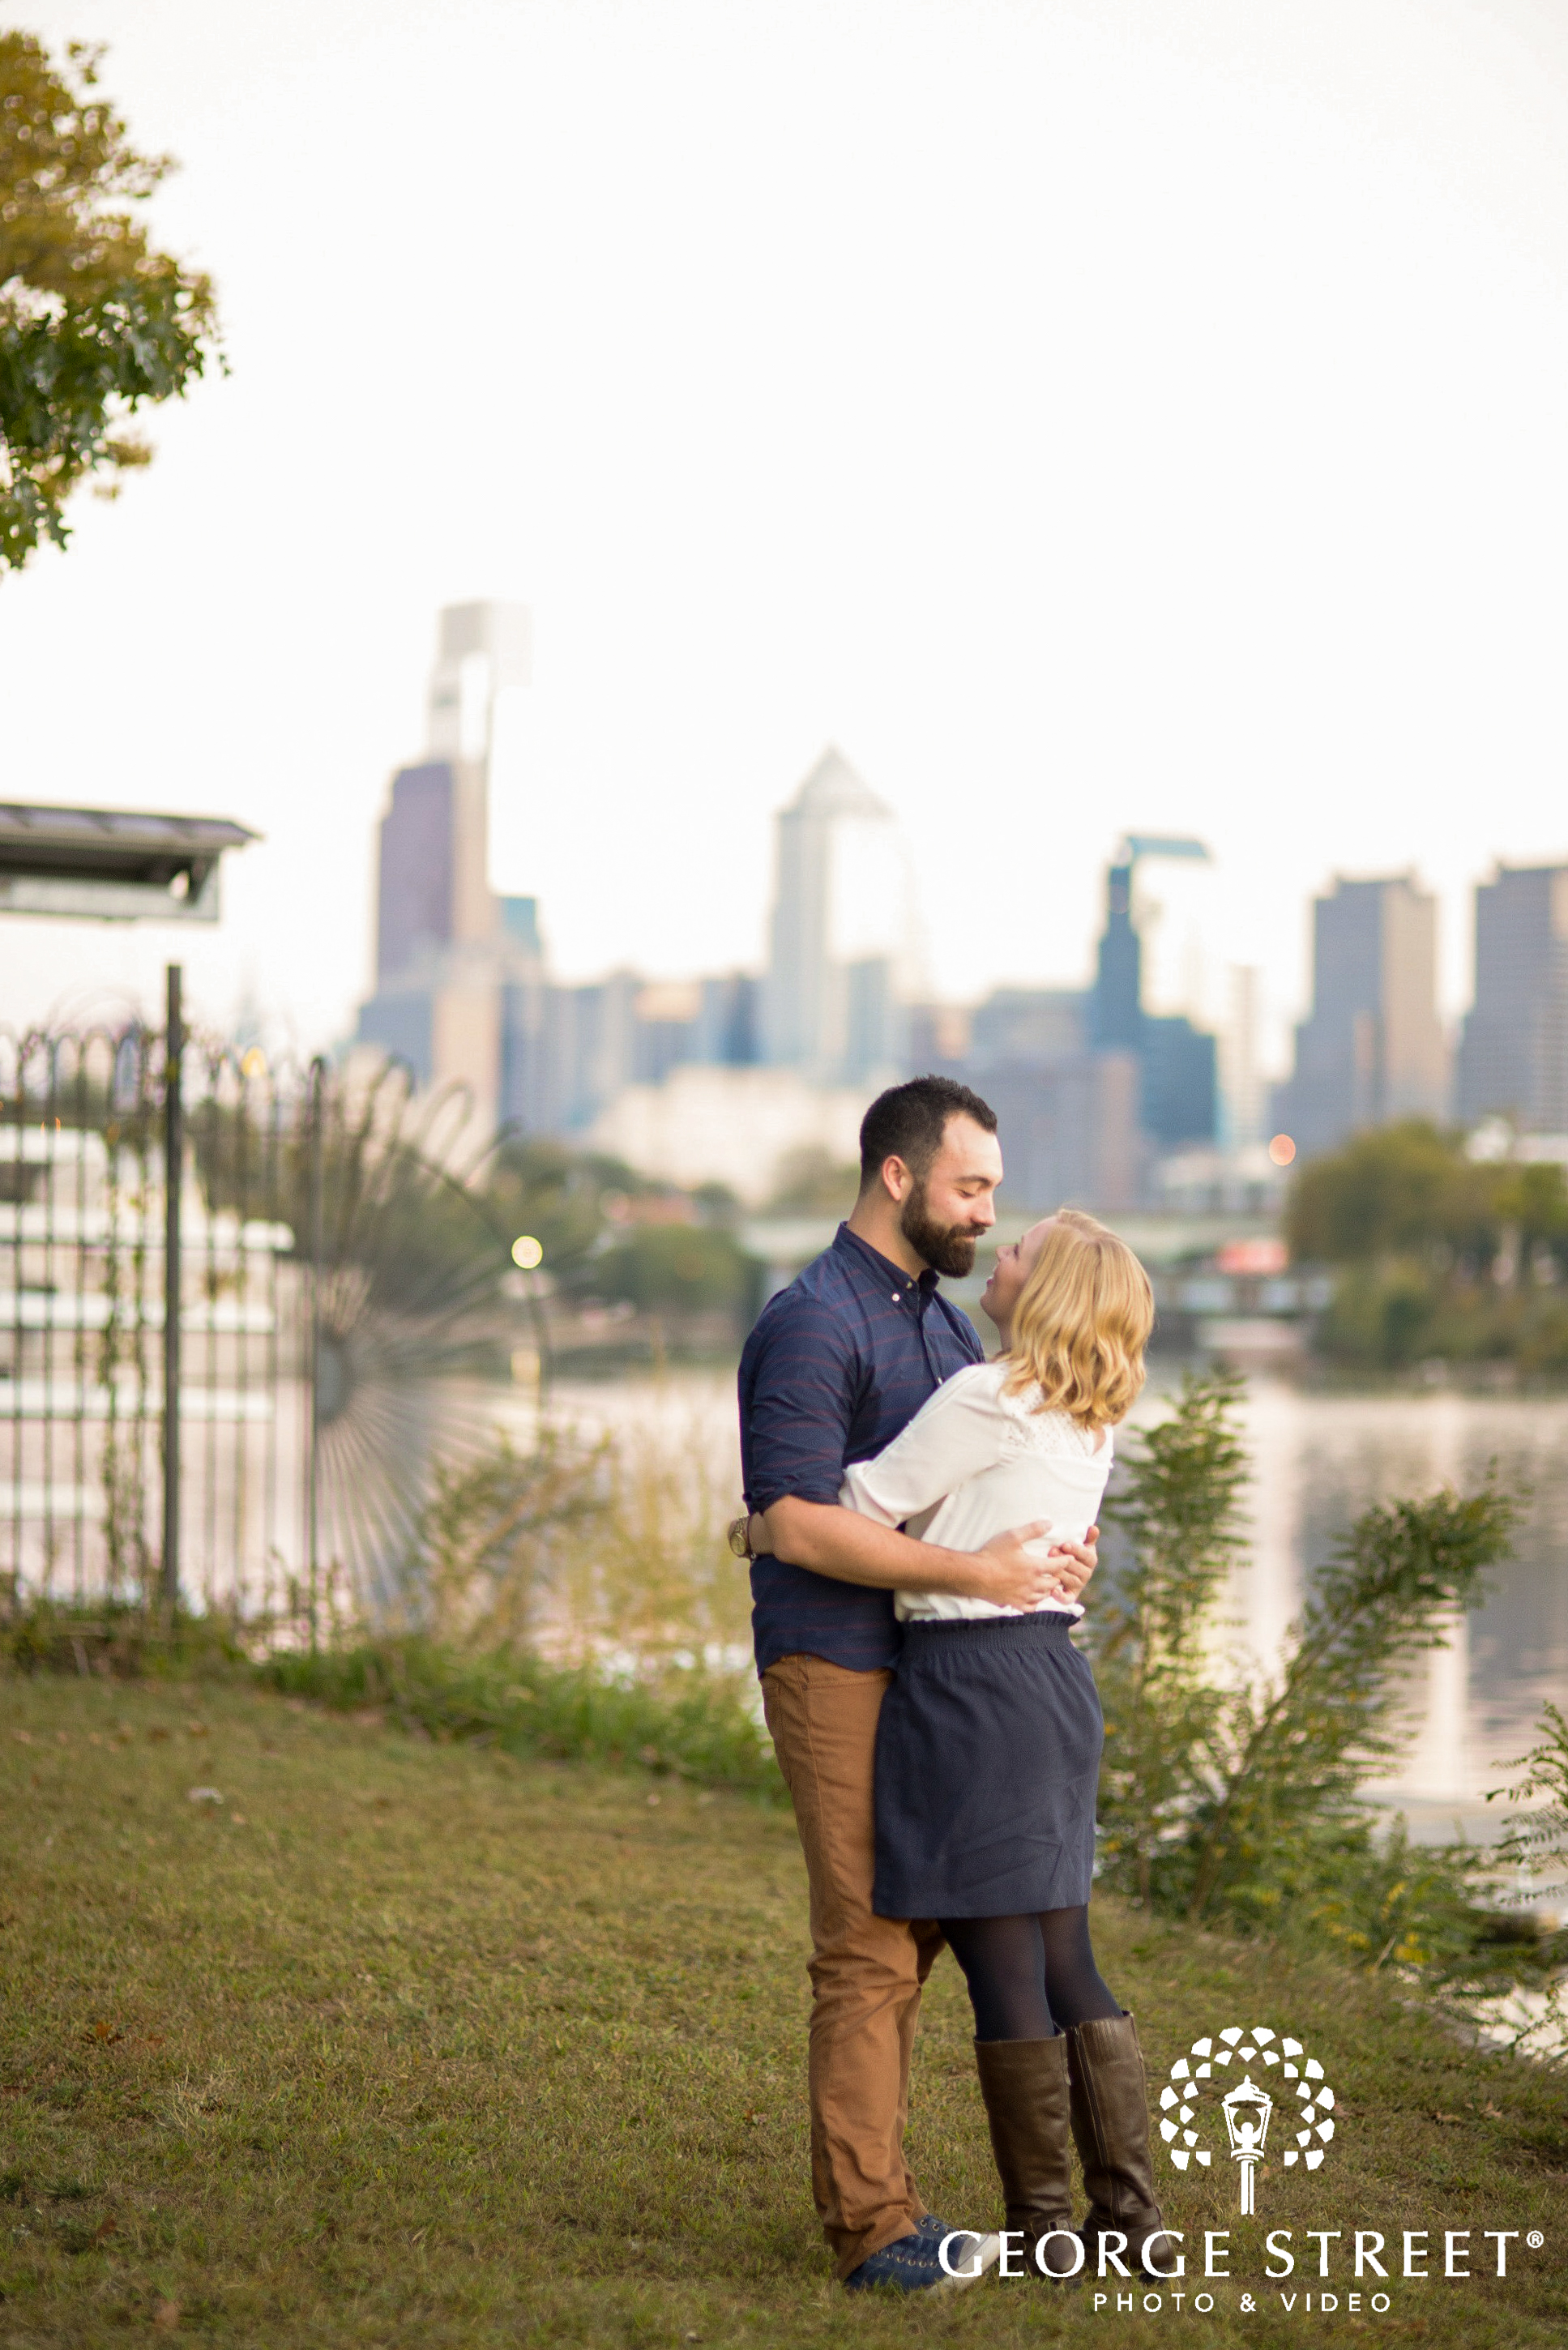 city views in background of couple